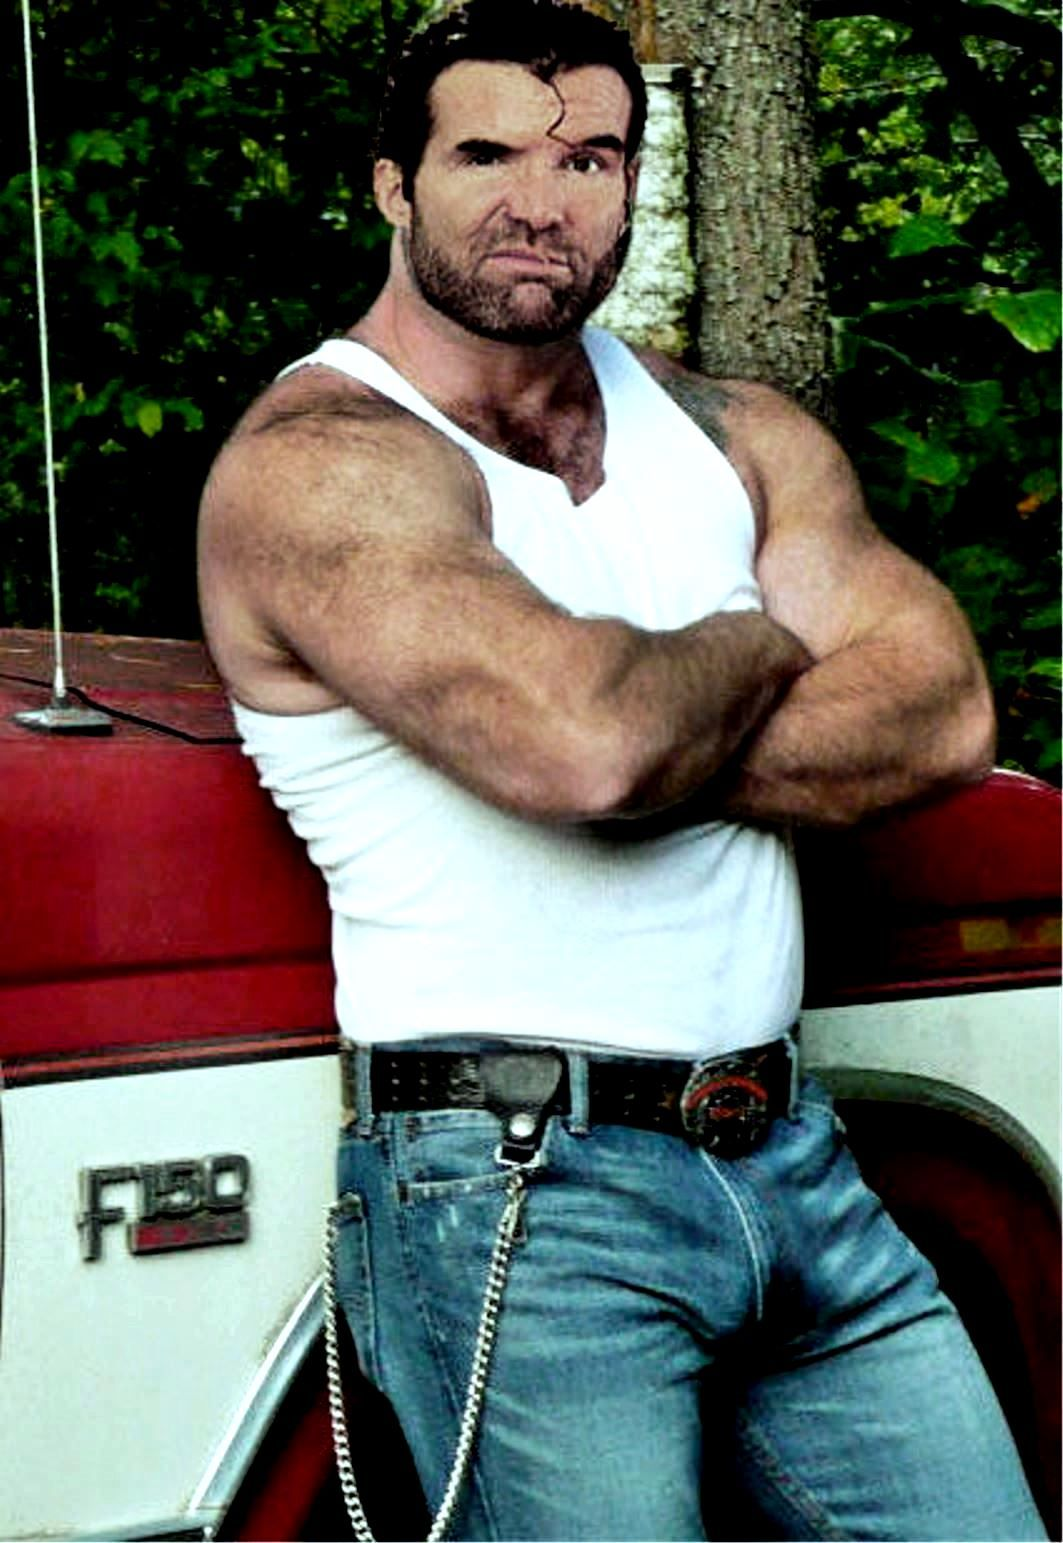 Pin by Craig Terry on Bear dudes 1 | Hairy muscle men